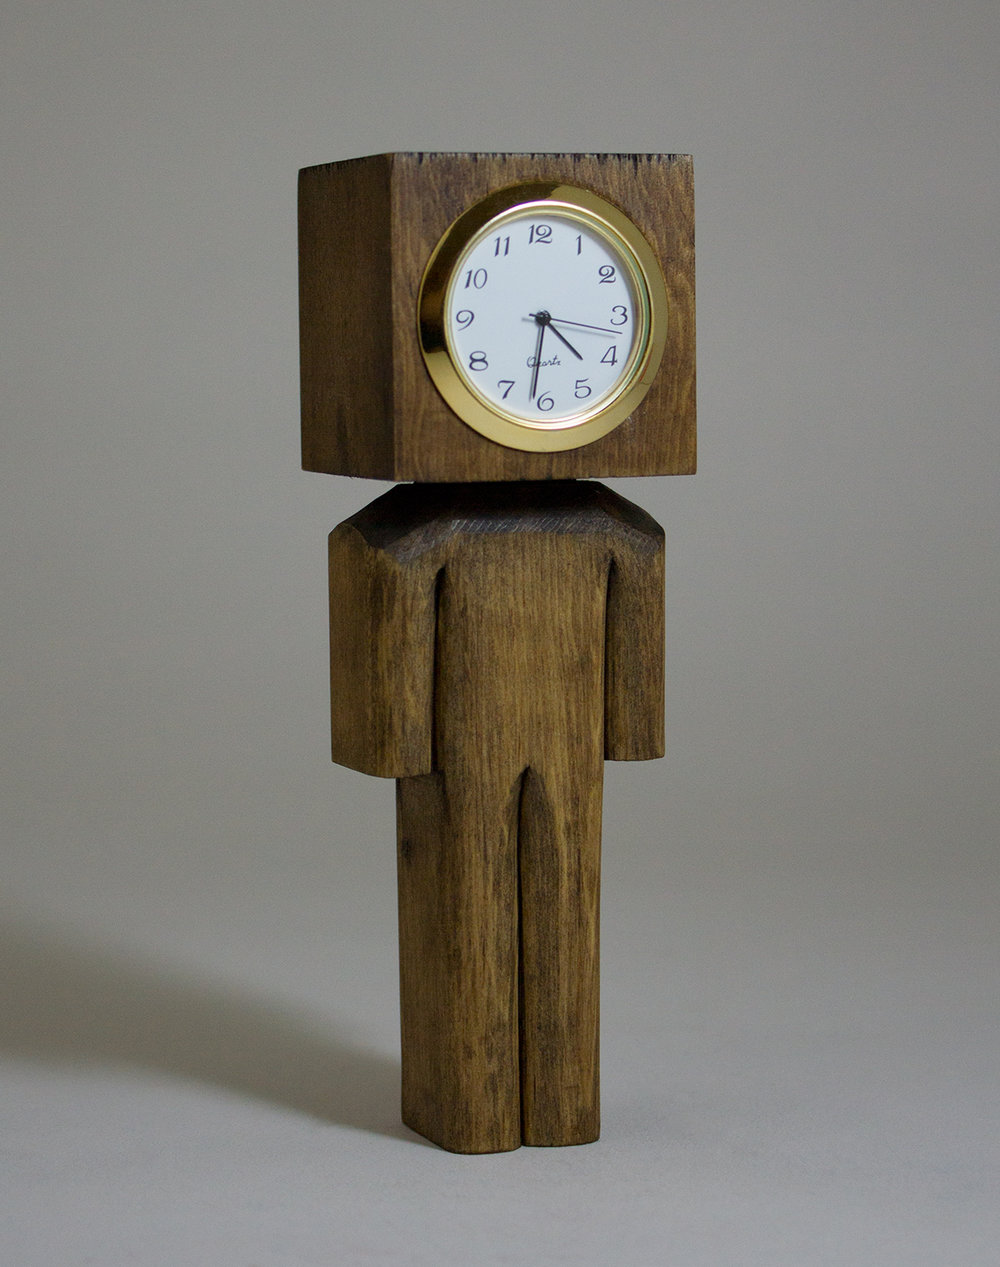 Clockhead  wood acrylic and clock face 5.5 x 1.5 x 1.5 CSK 014G